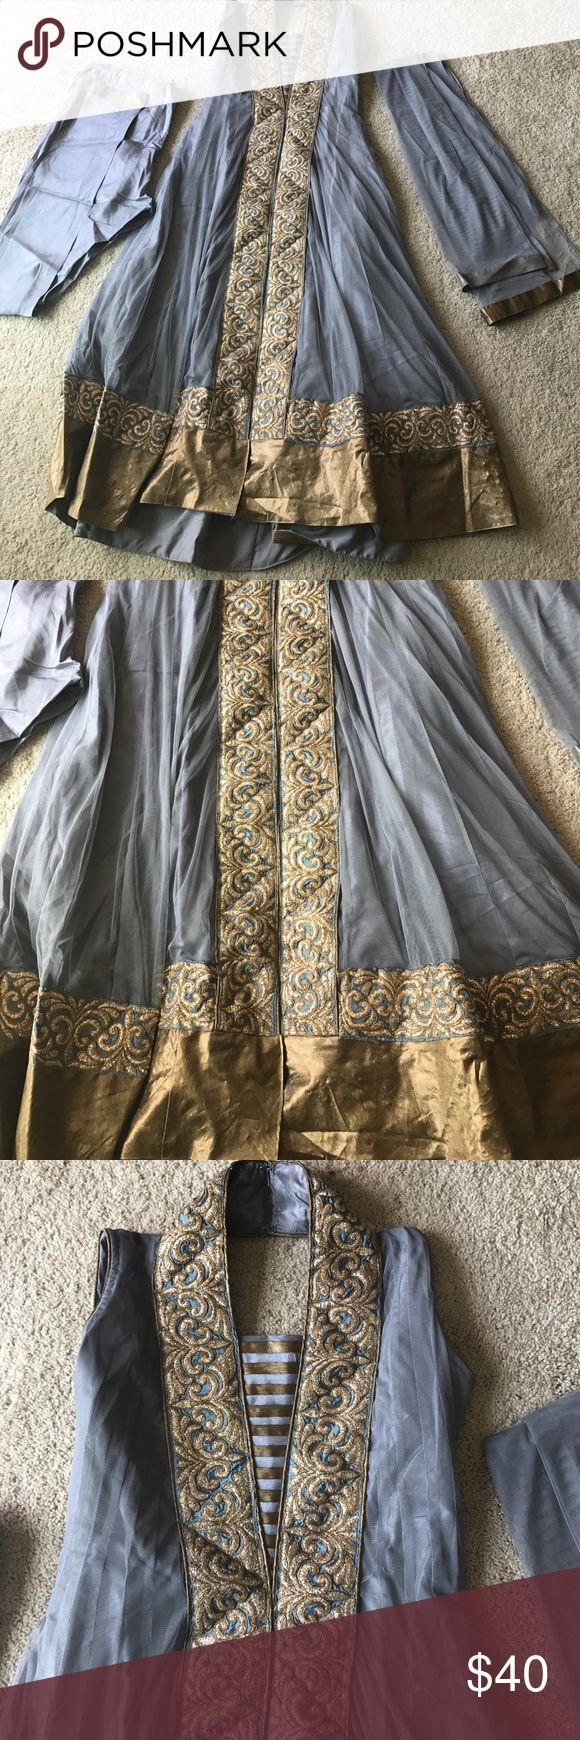 Gray churidar anarkali Gray churidar anarkali with gold border Other